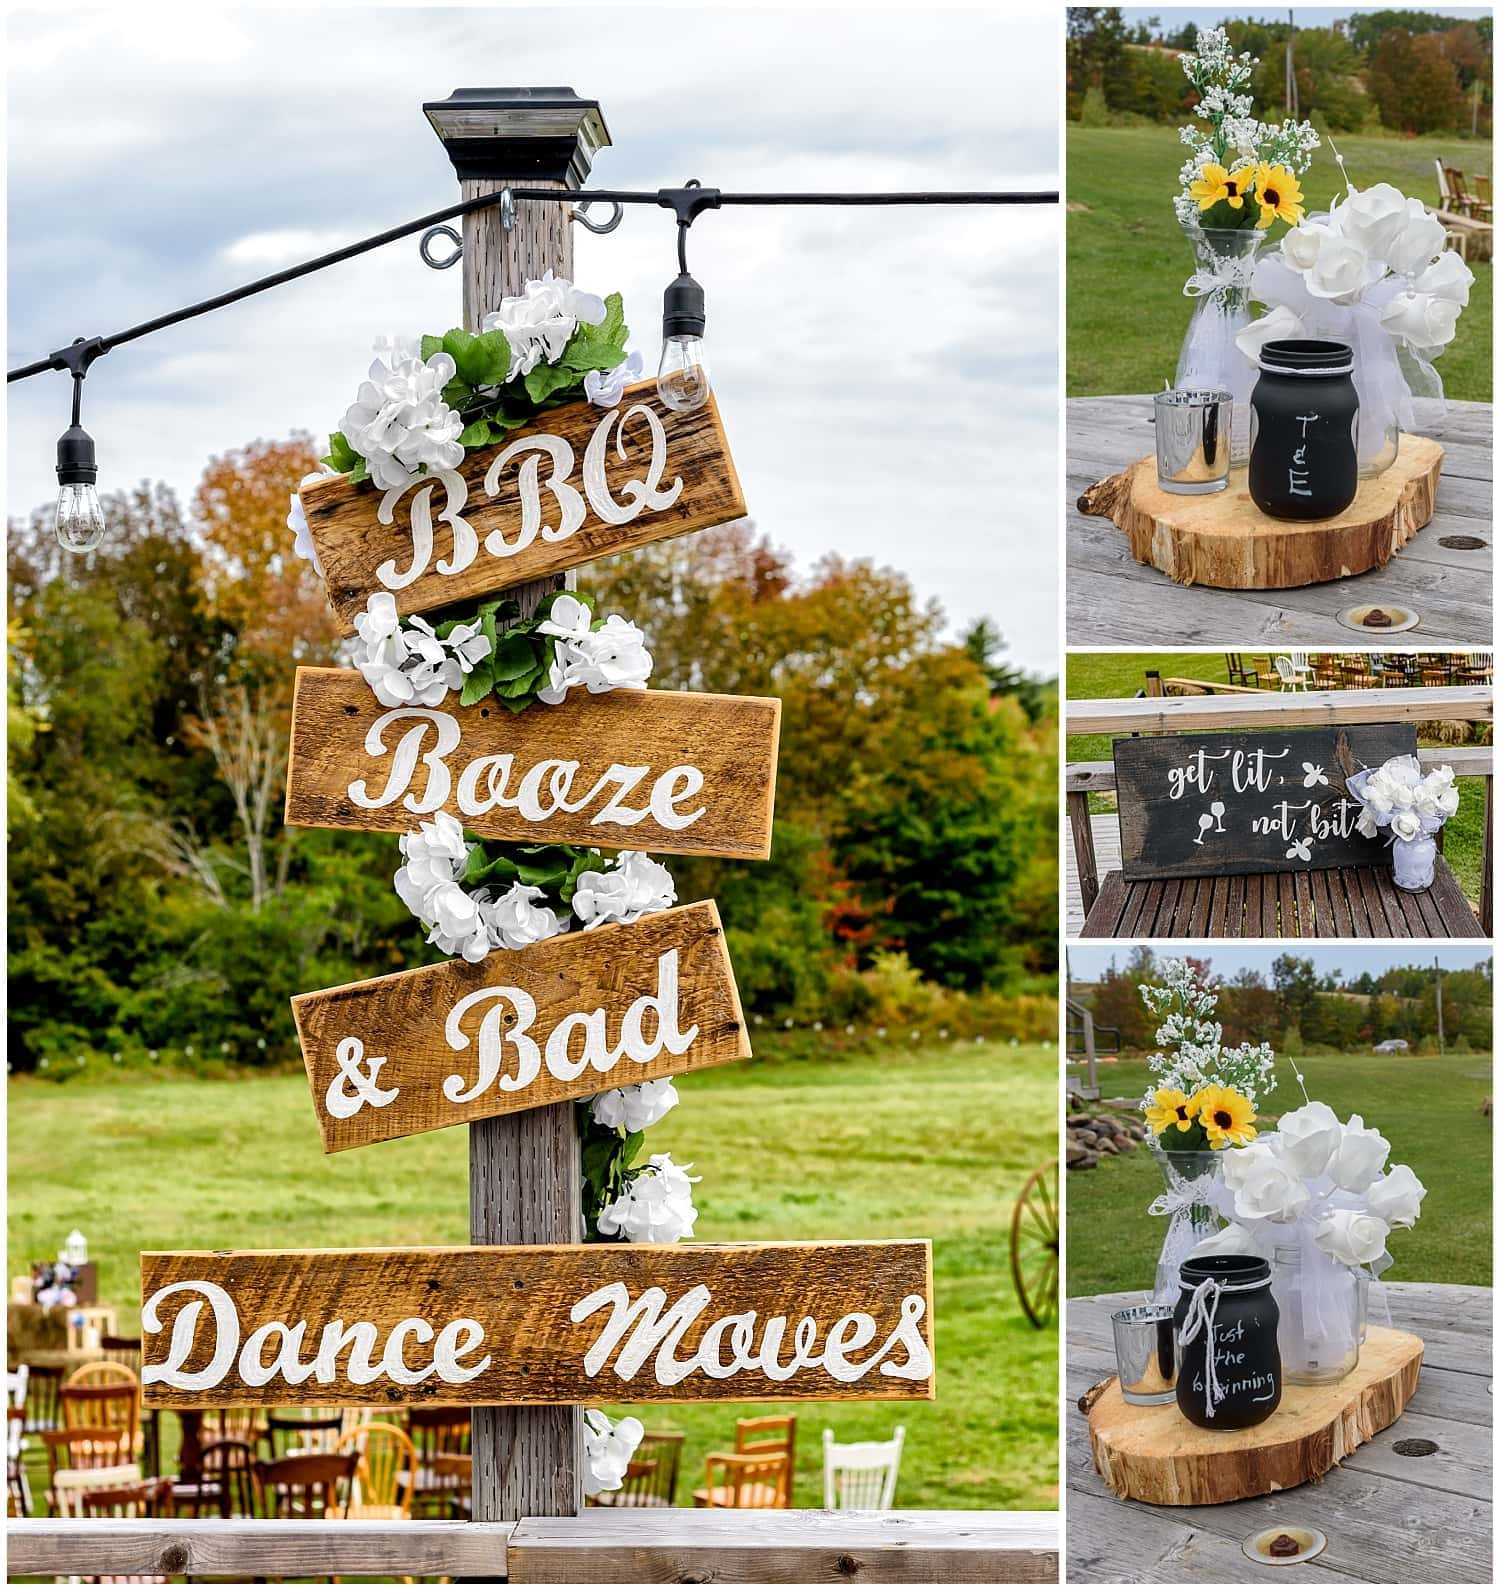 The wedding reception set up for a wedding day at the Barn at Sadie Belle Farm in Hantsport NS with wooden wedding signs.